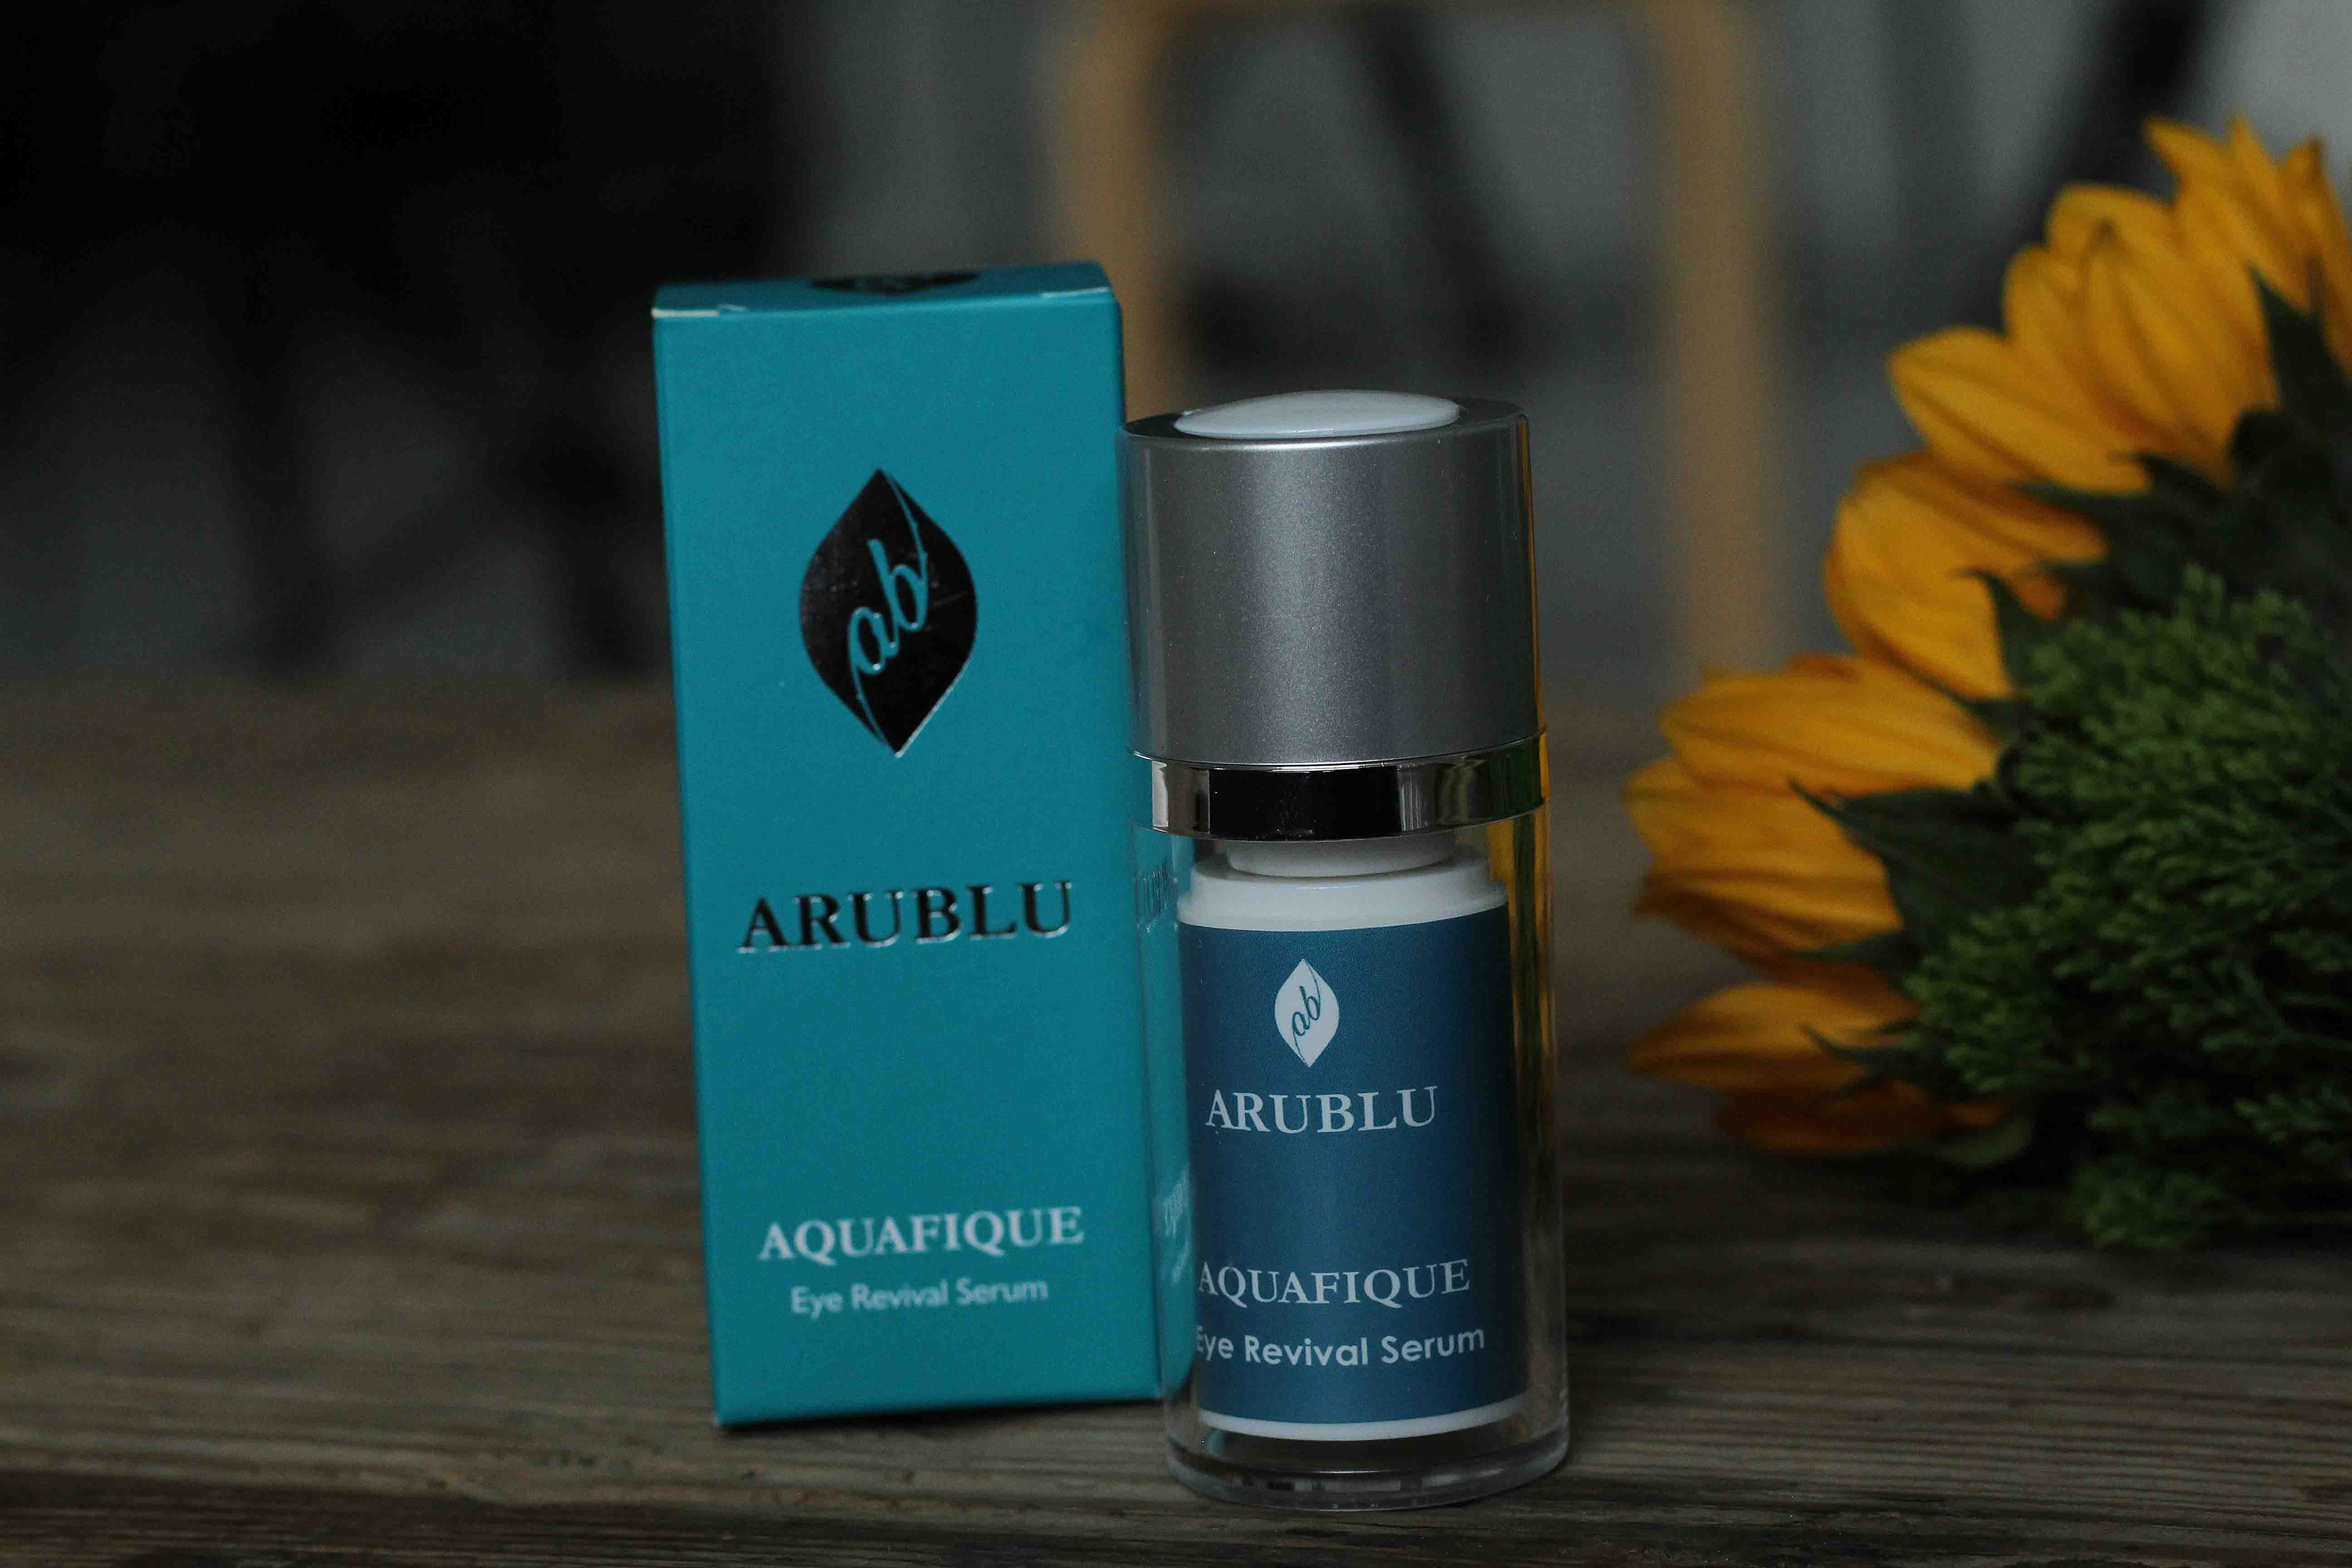 Aquafique Eye Revival Serum